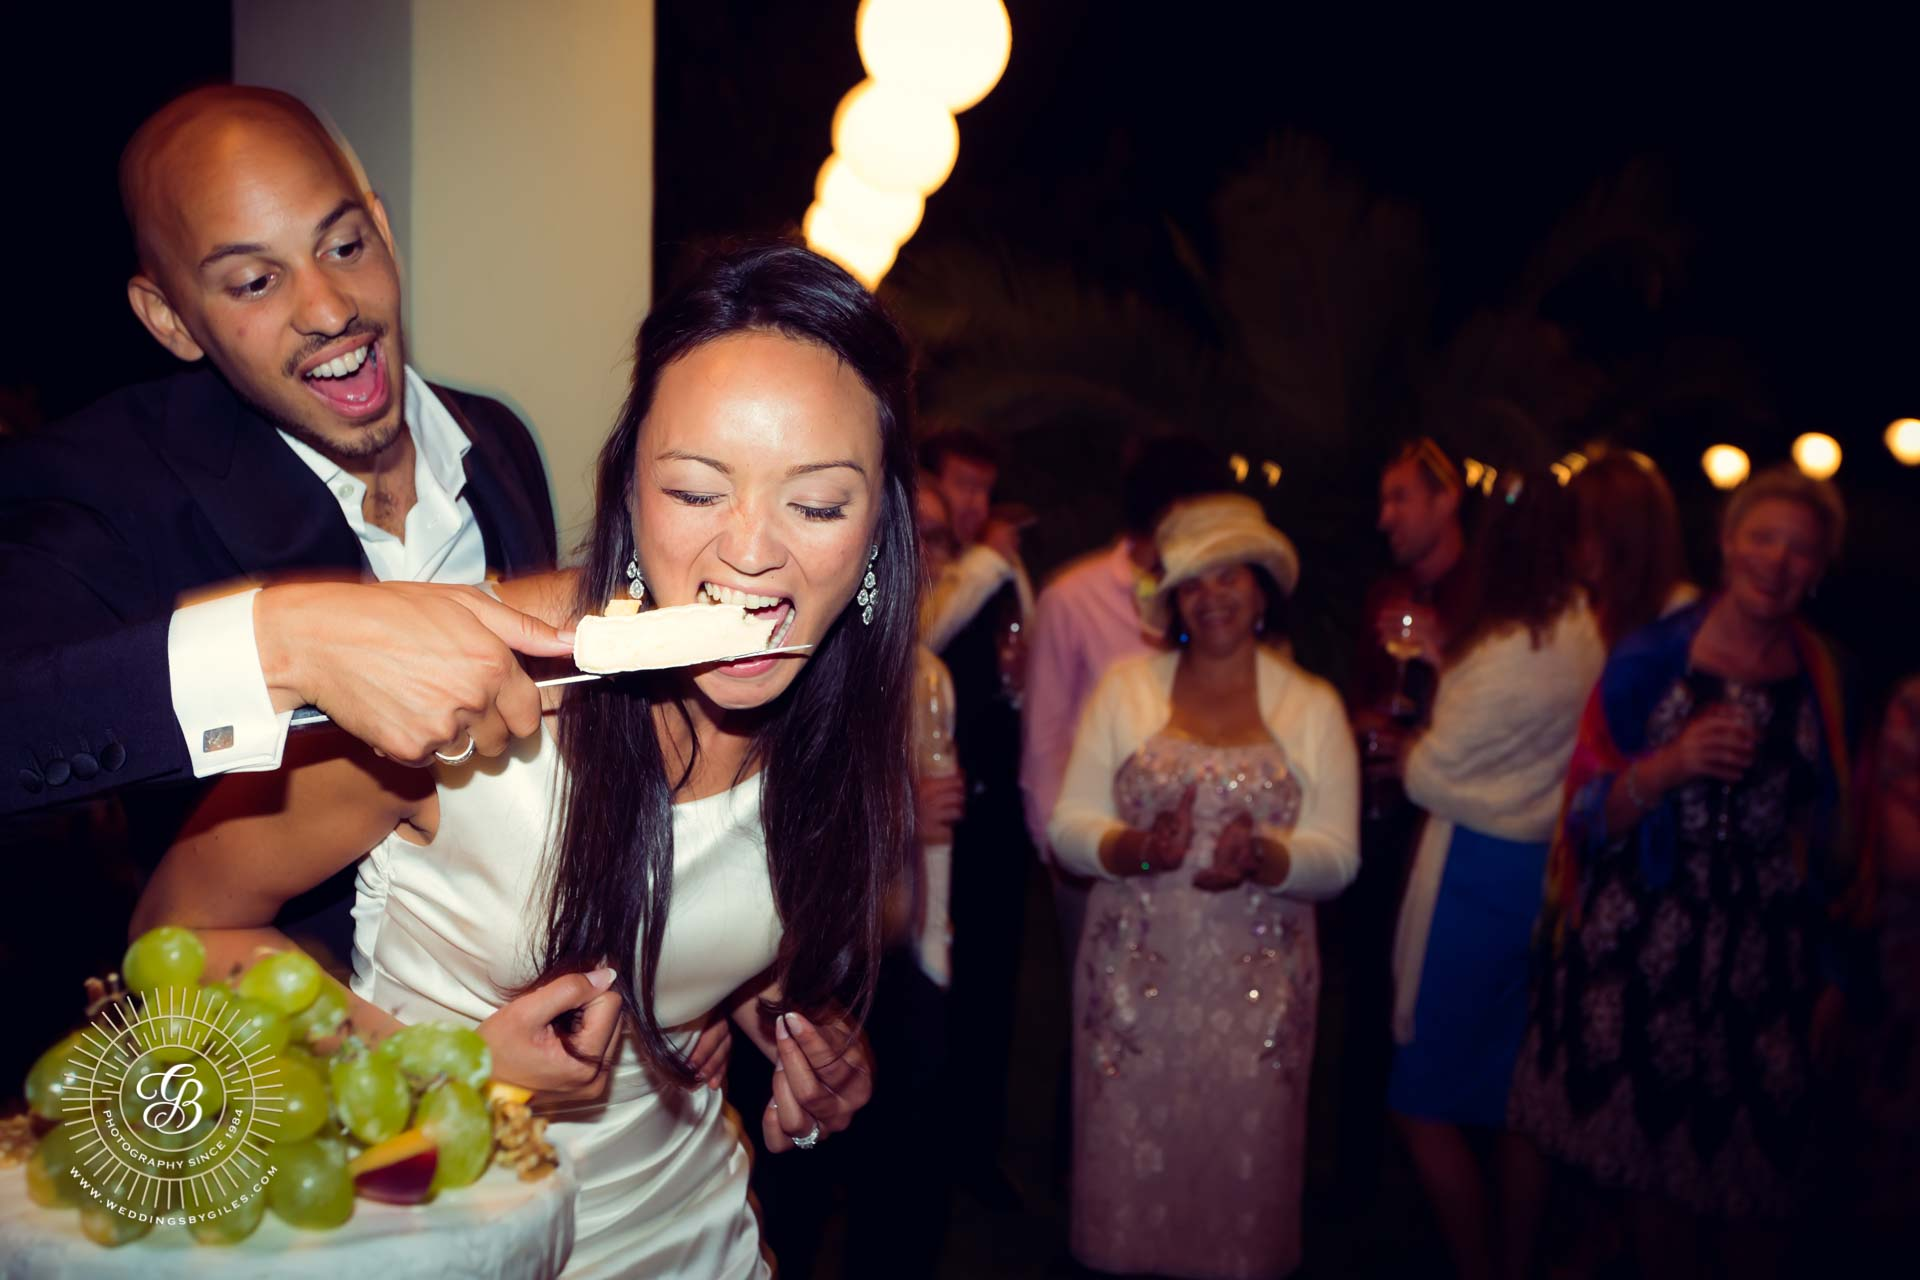 Bride eats cheese cake